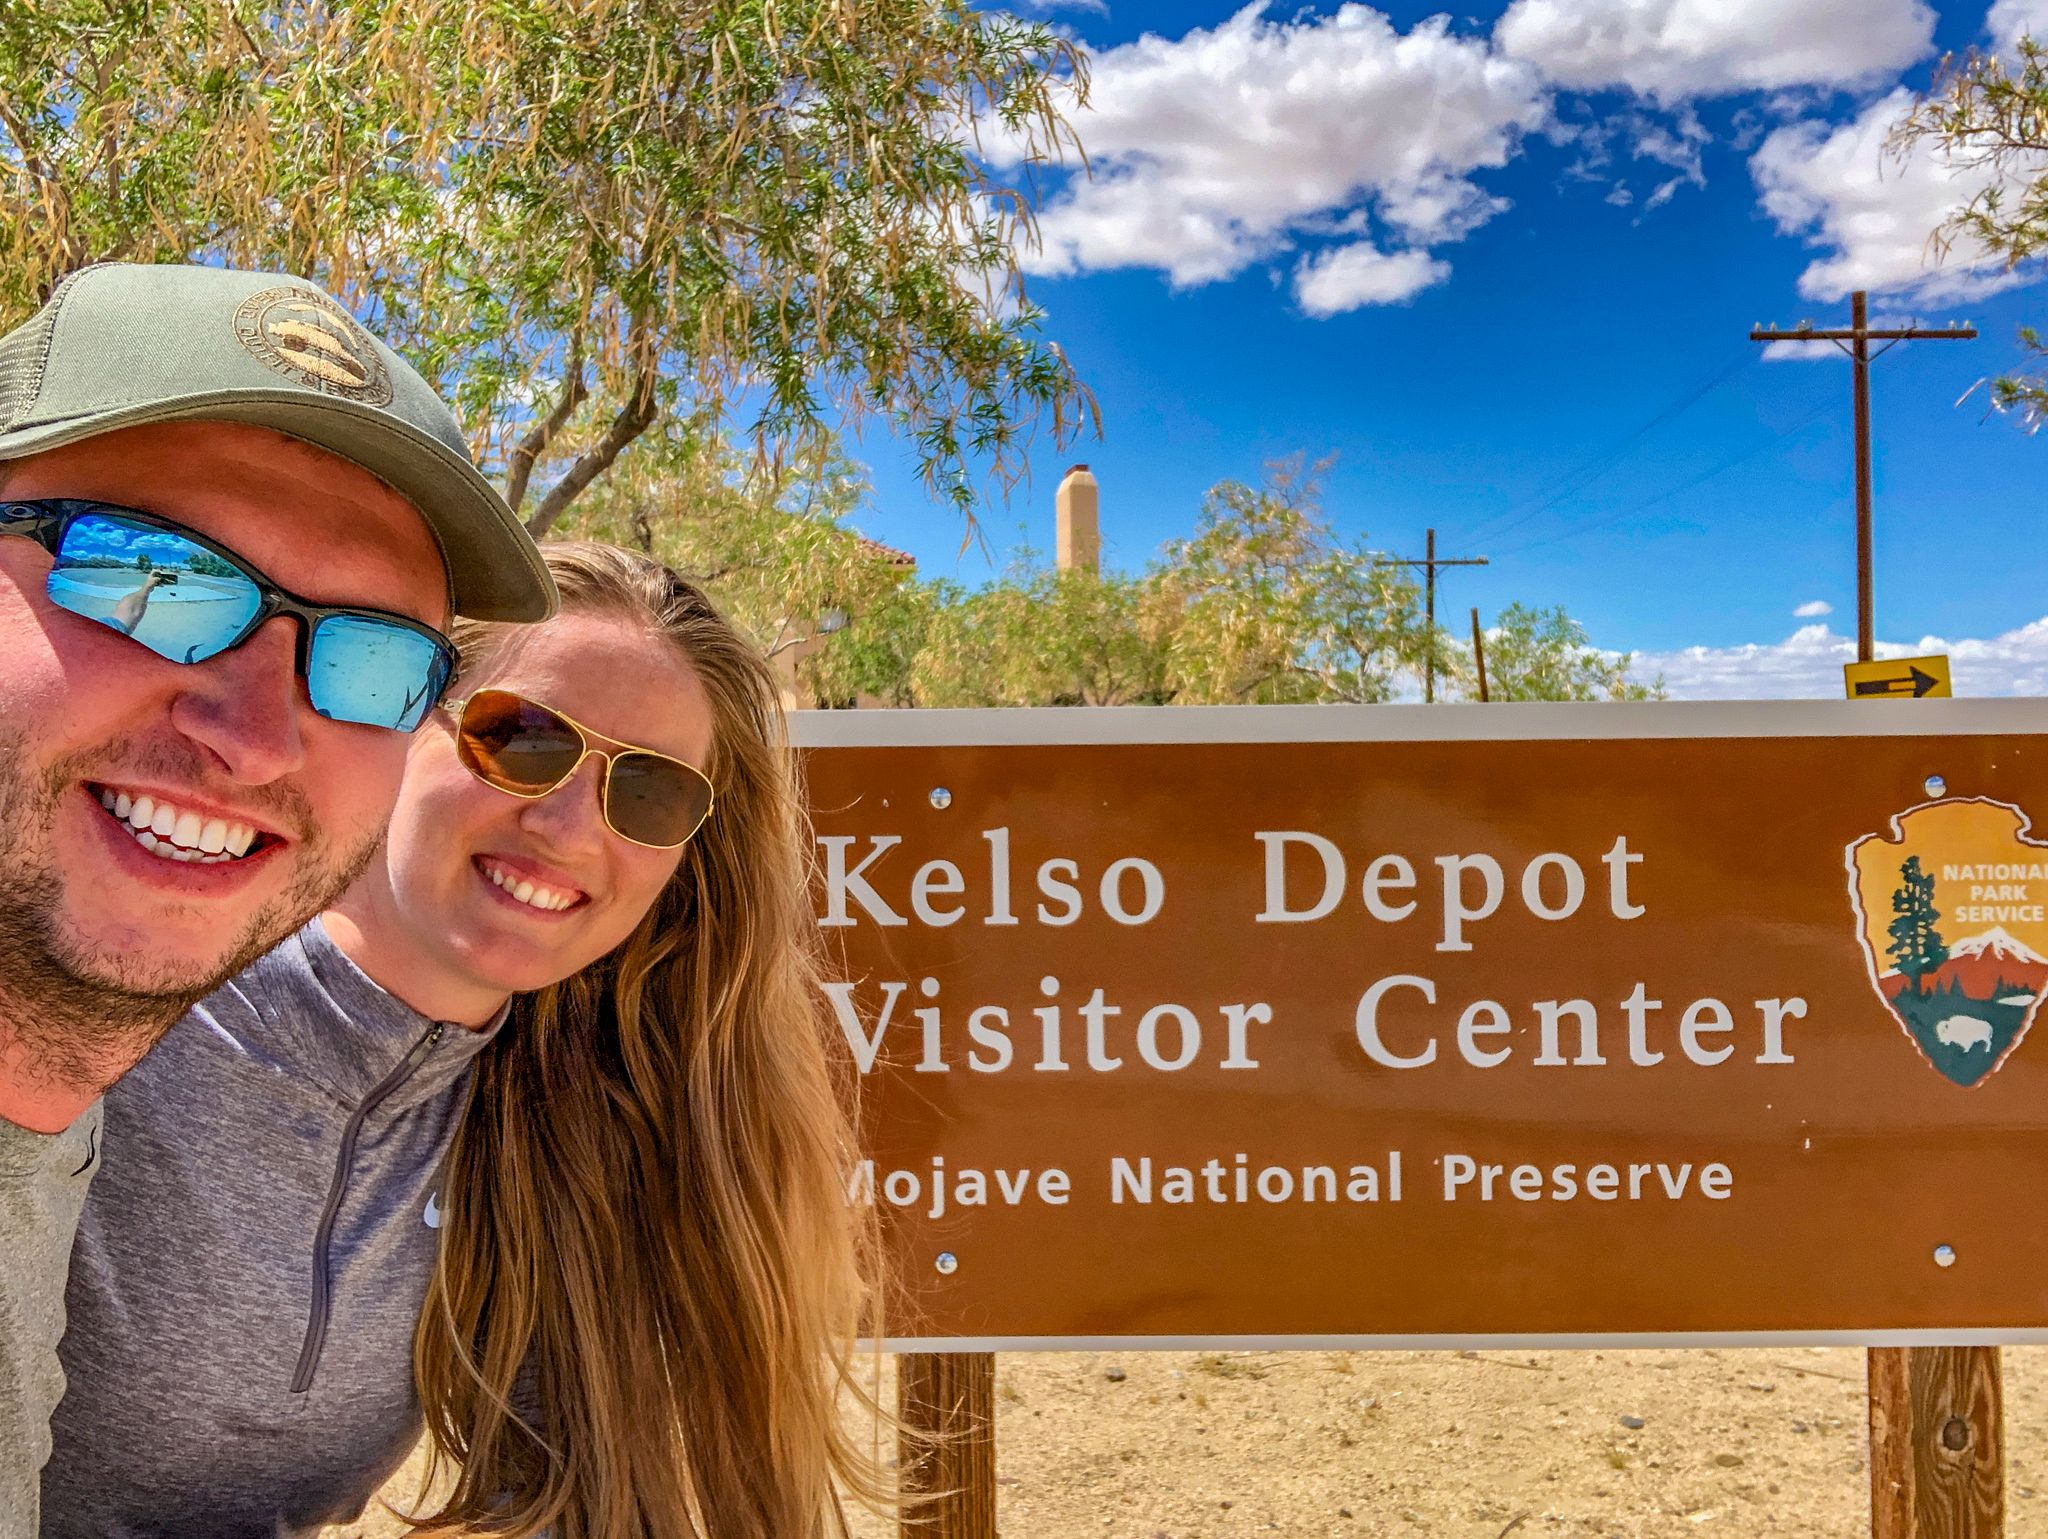 Kelso Depot Visitor Center